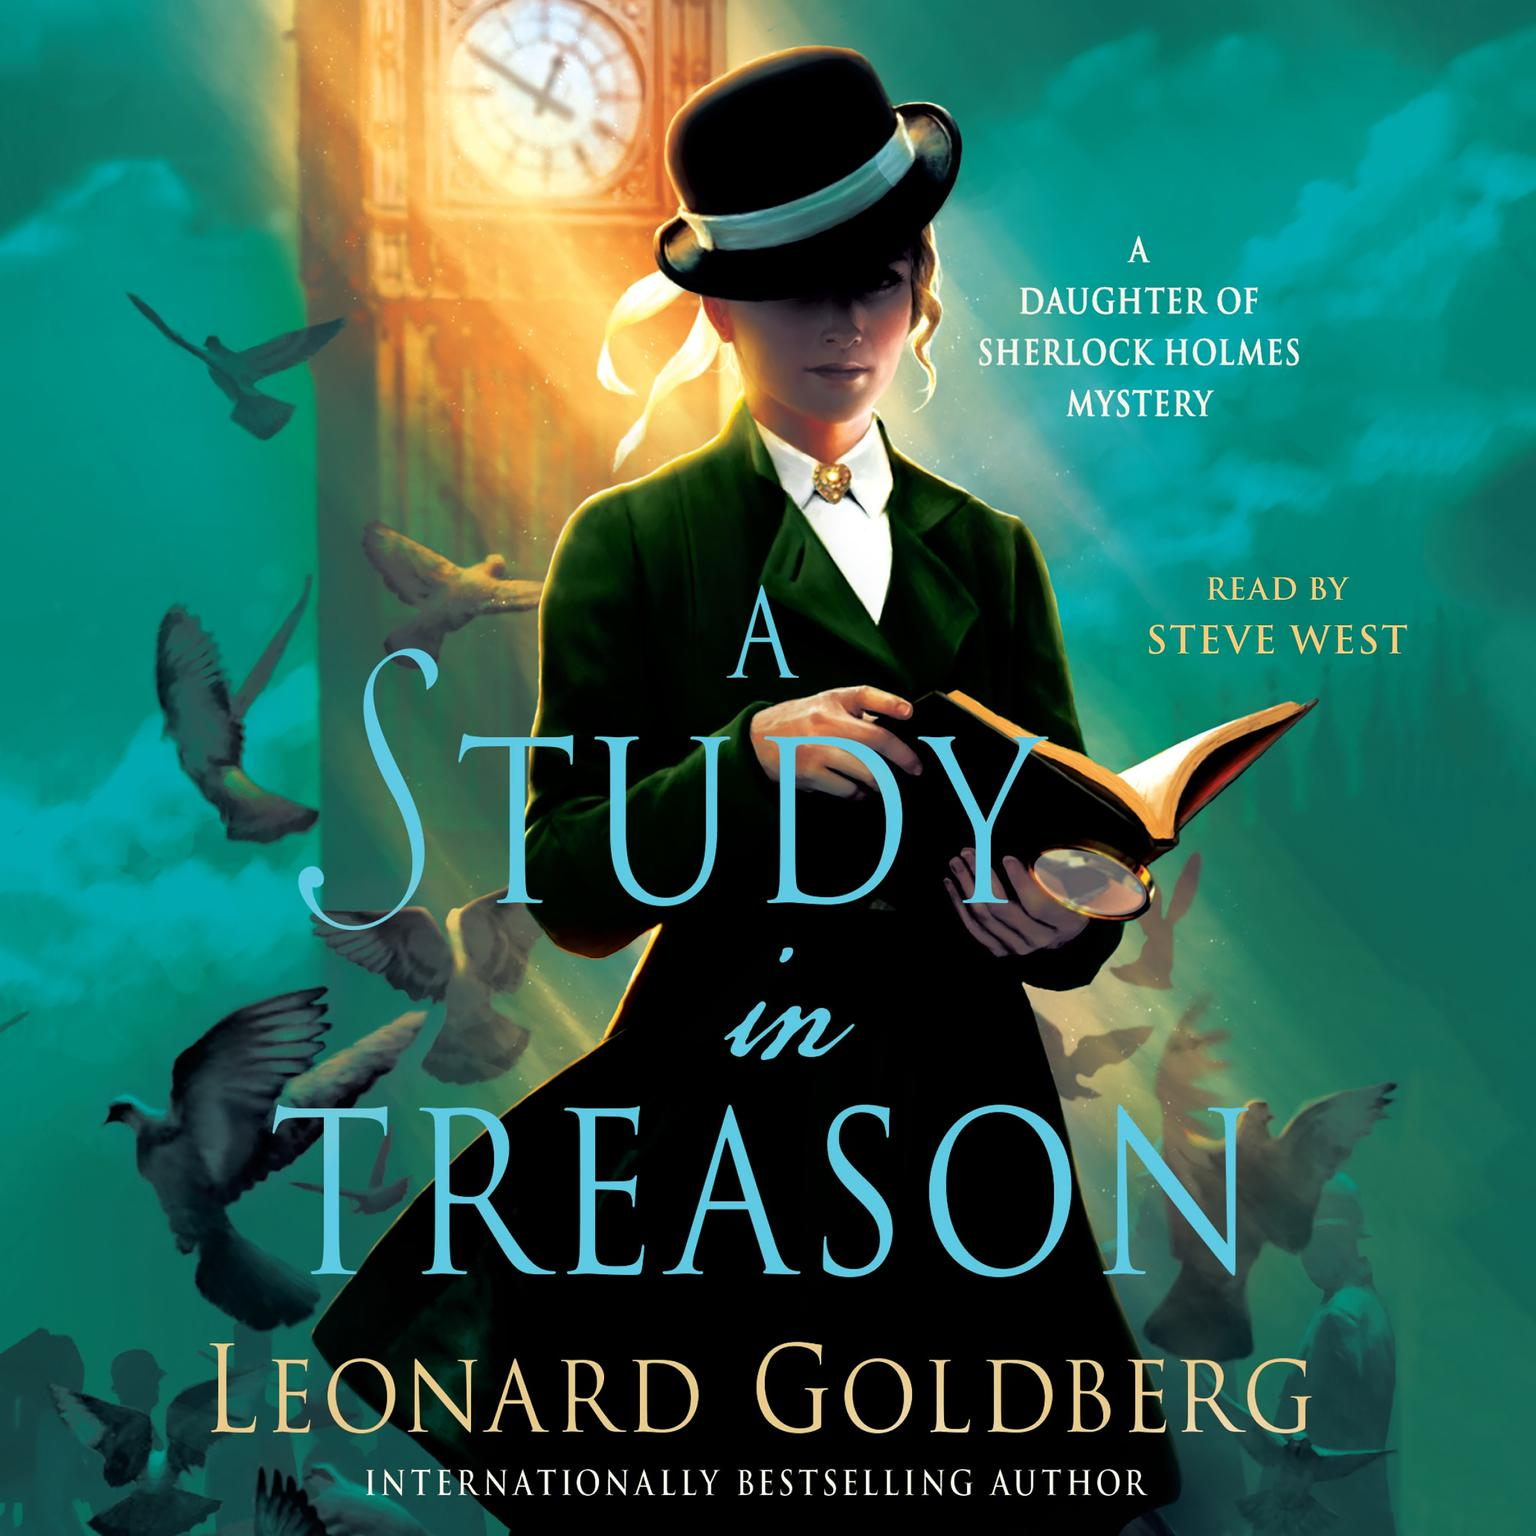 Printable A Study in Treason: A Daughter of Sherlock Holmes Mystery Audiobook Cover Art